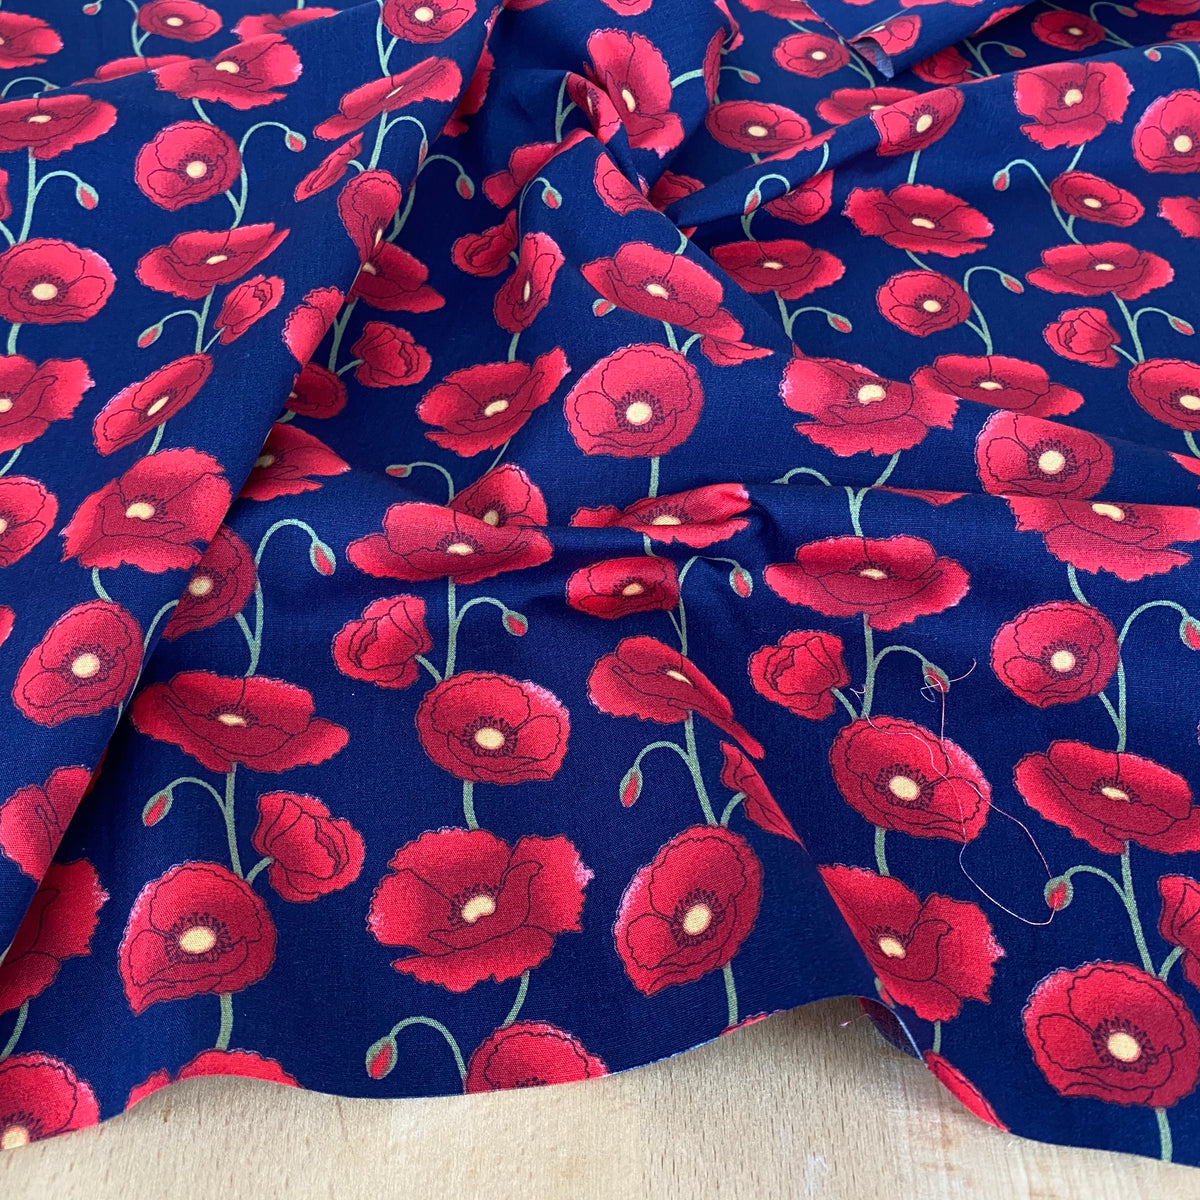 Centenary Poppies,  navy blue 100% Cotton Fabric, sold per Half Metre, 112cm wide